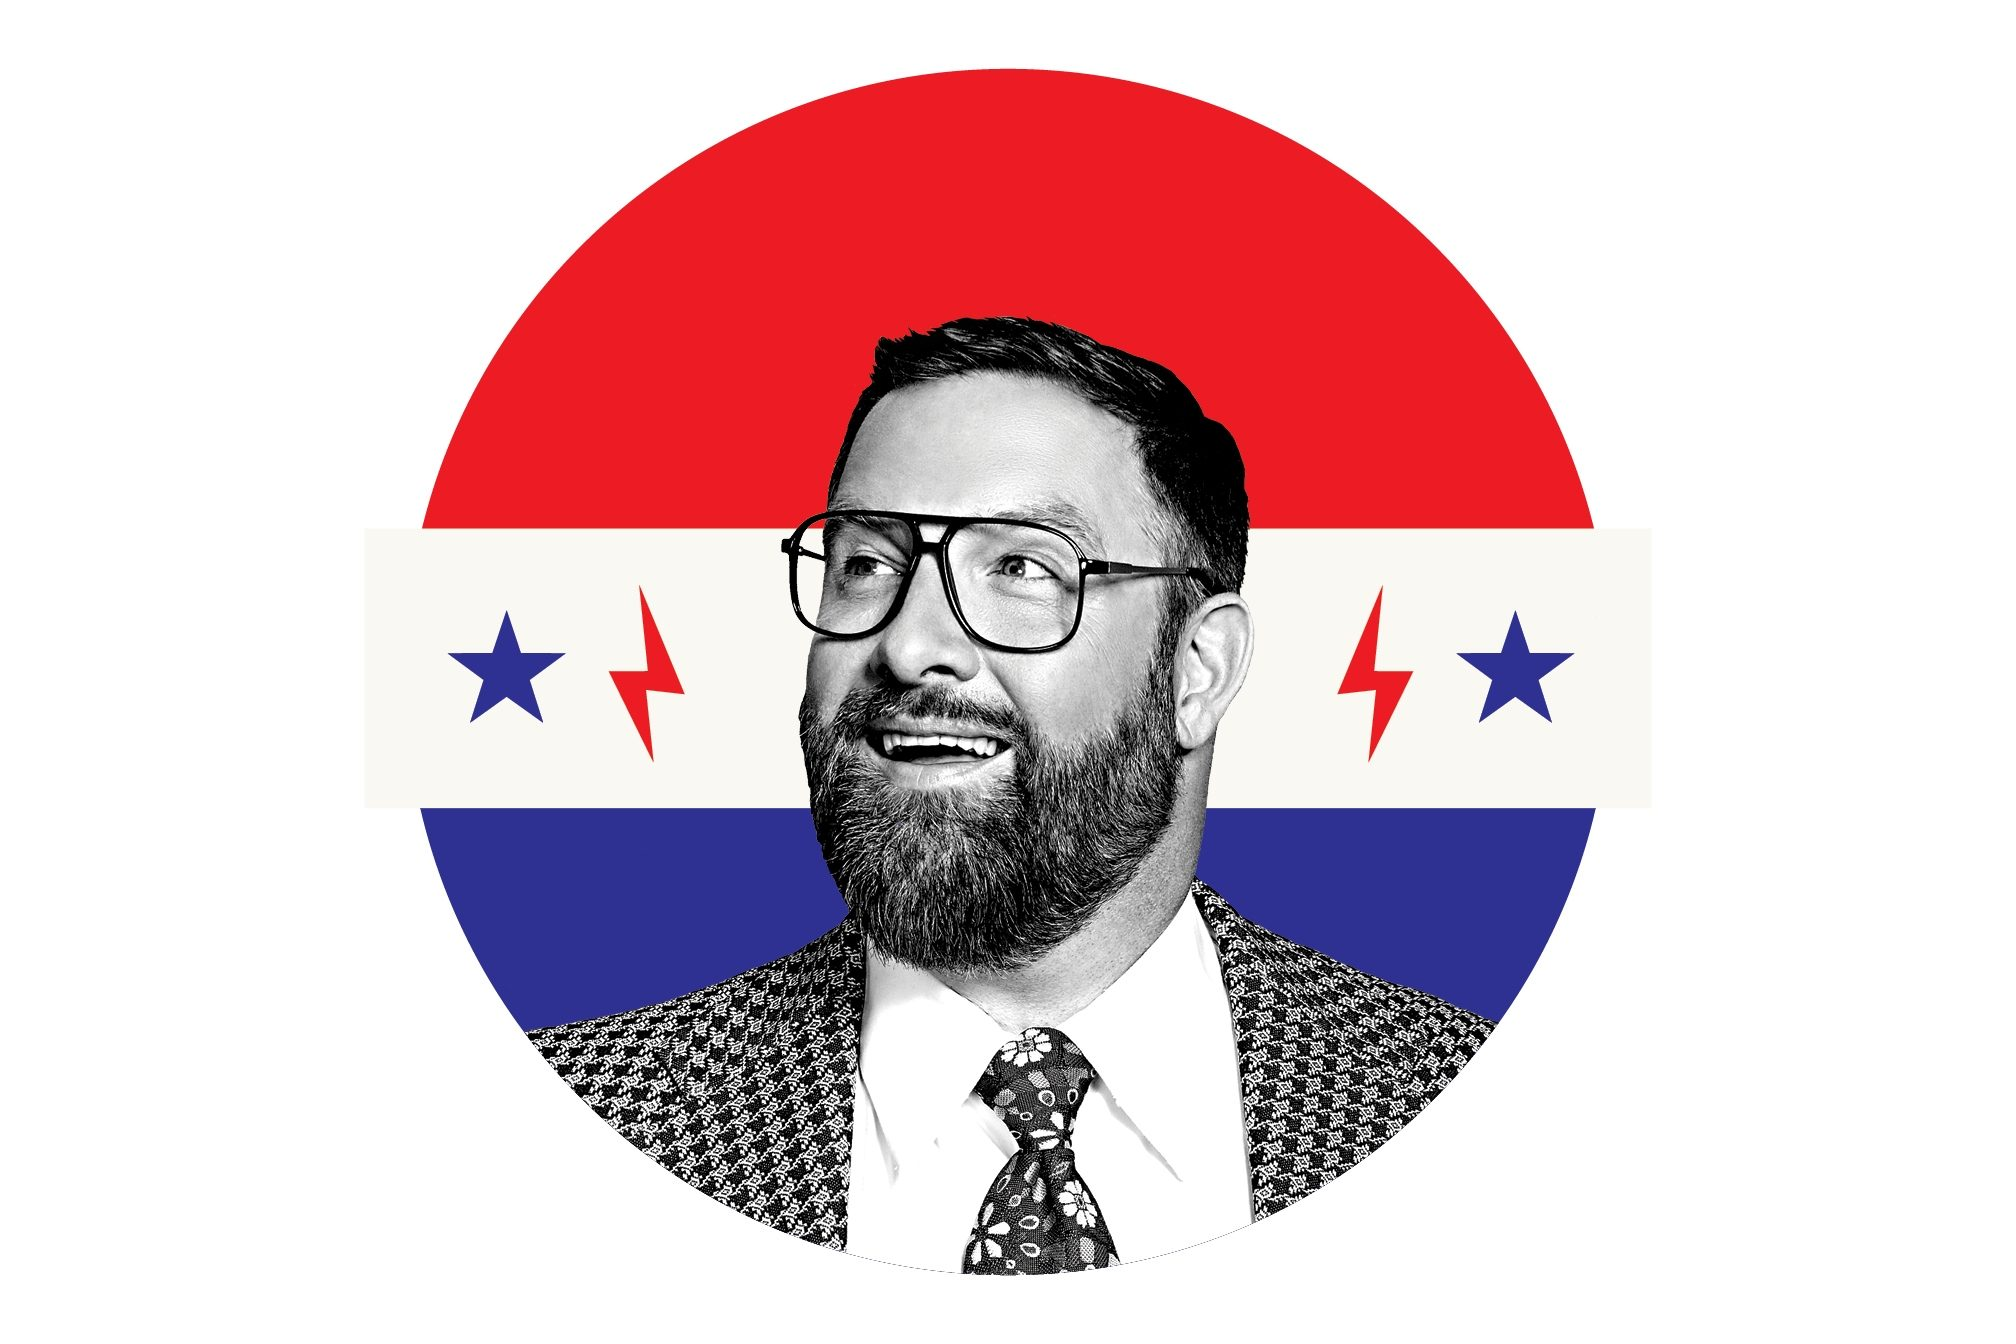 Claude VonStroke and the future of dance music in America